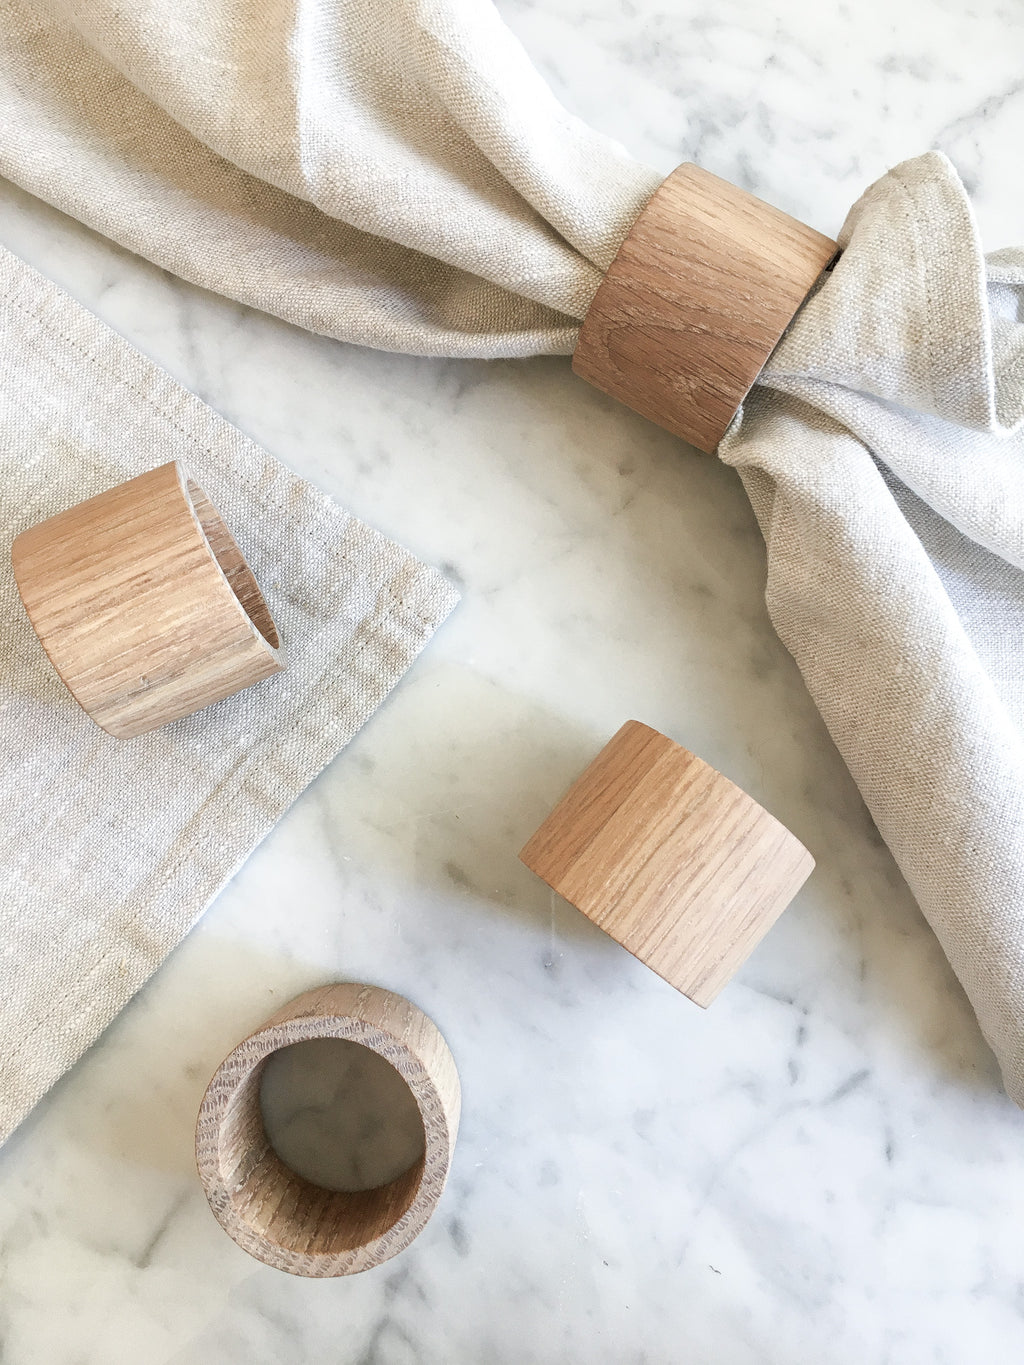 Napkin rings - ARK Workshop